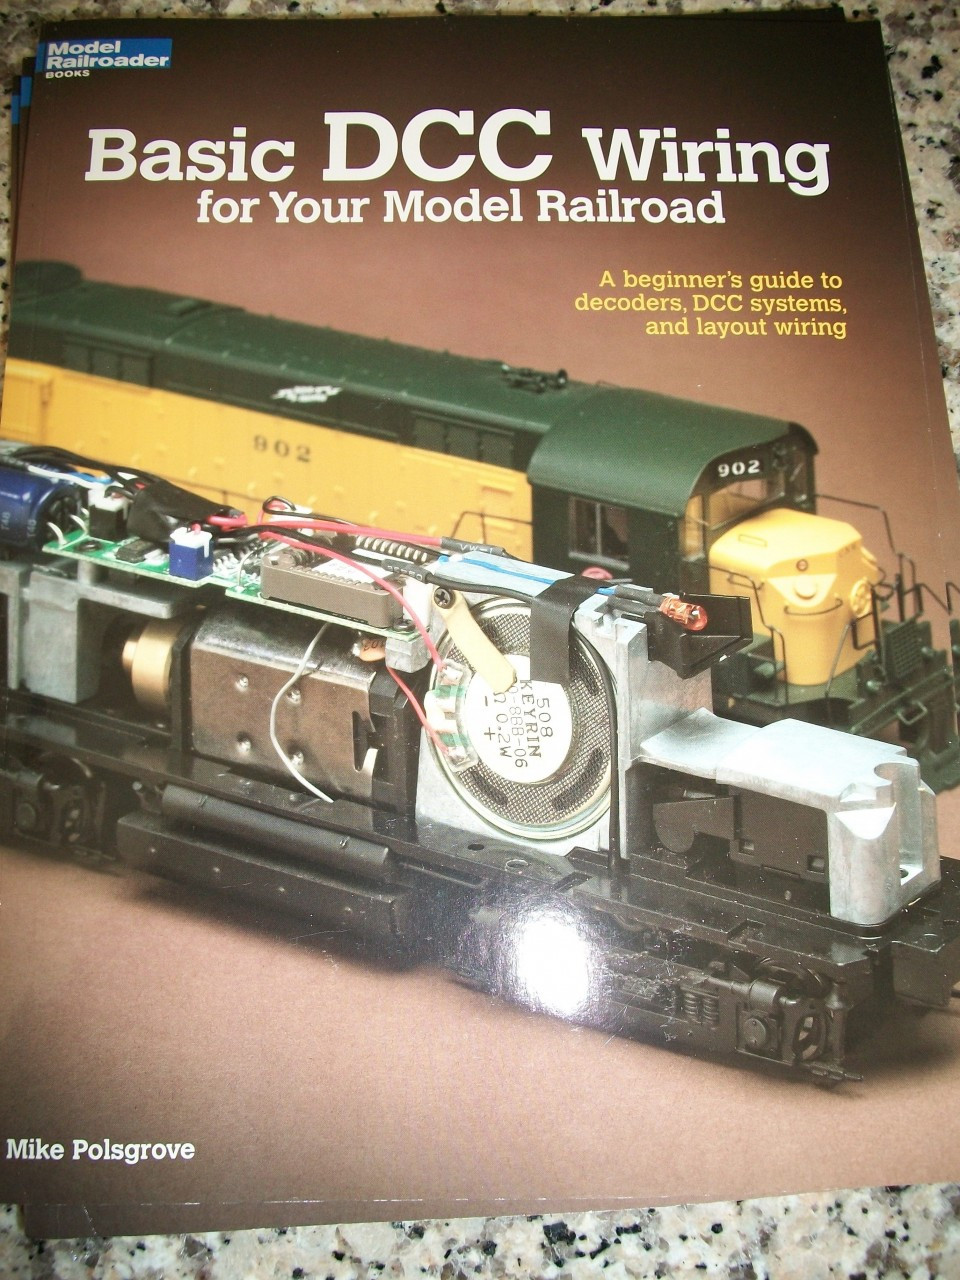 hight resolution of model railroader basic dcc wiring for your model railroad image 1 loading zoom